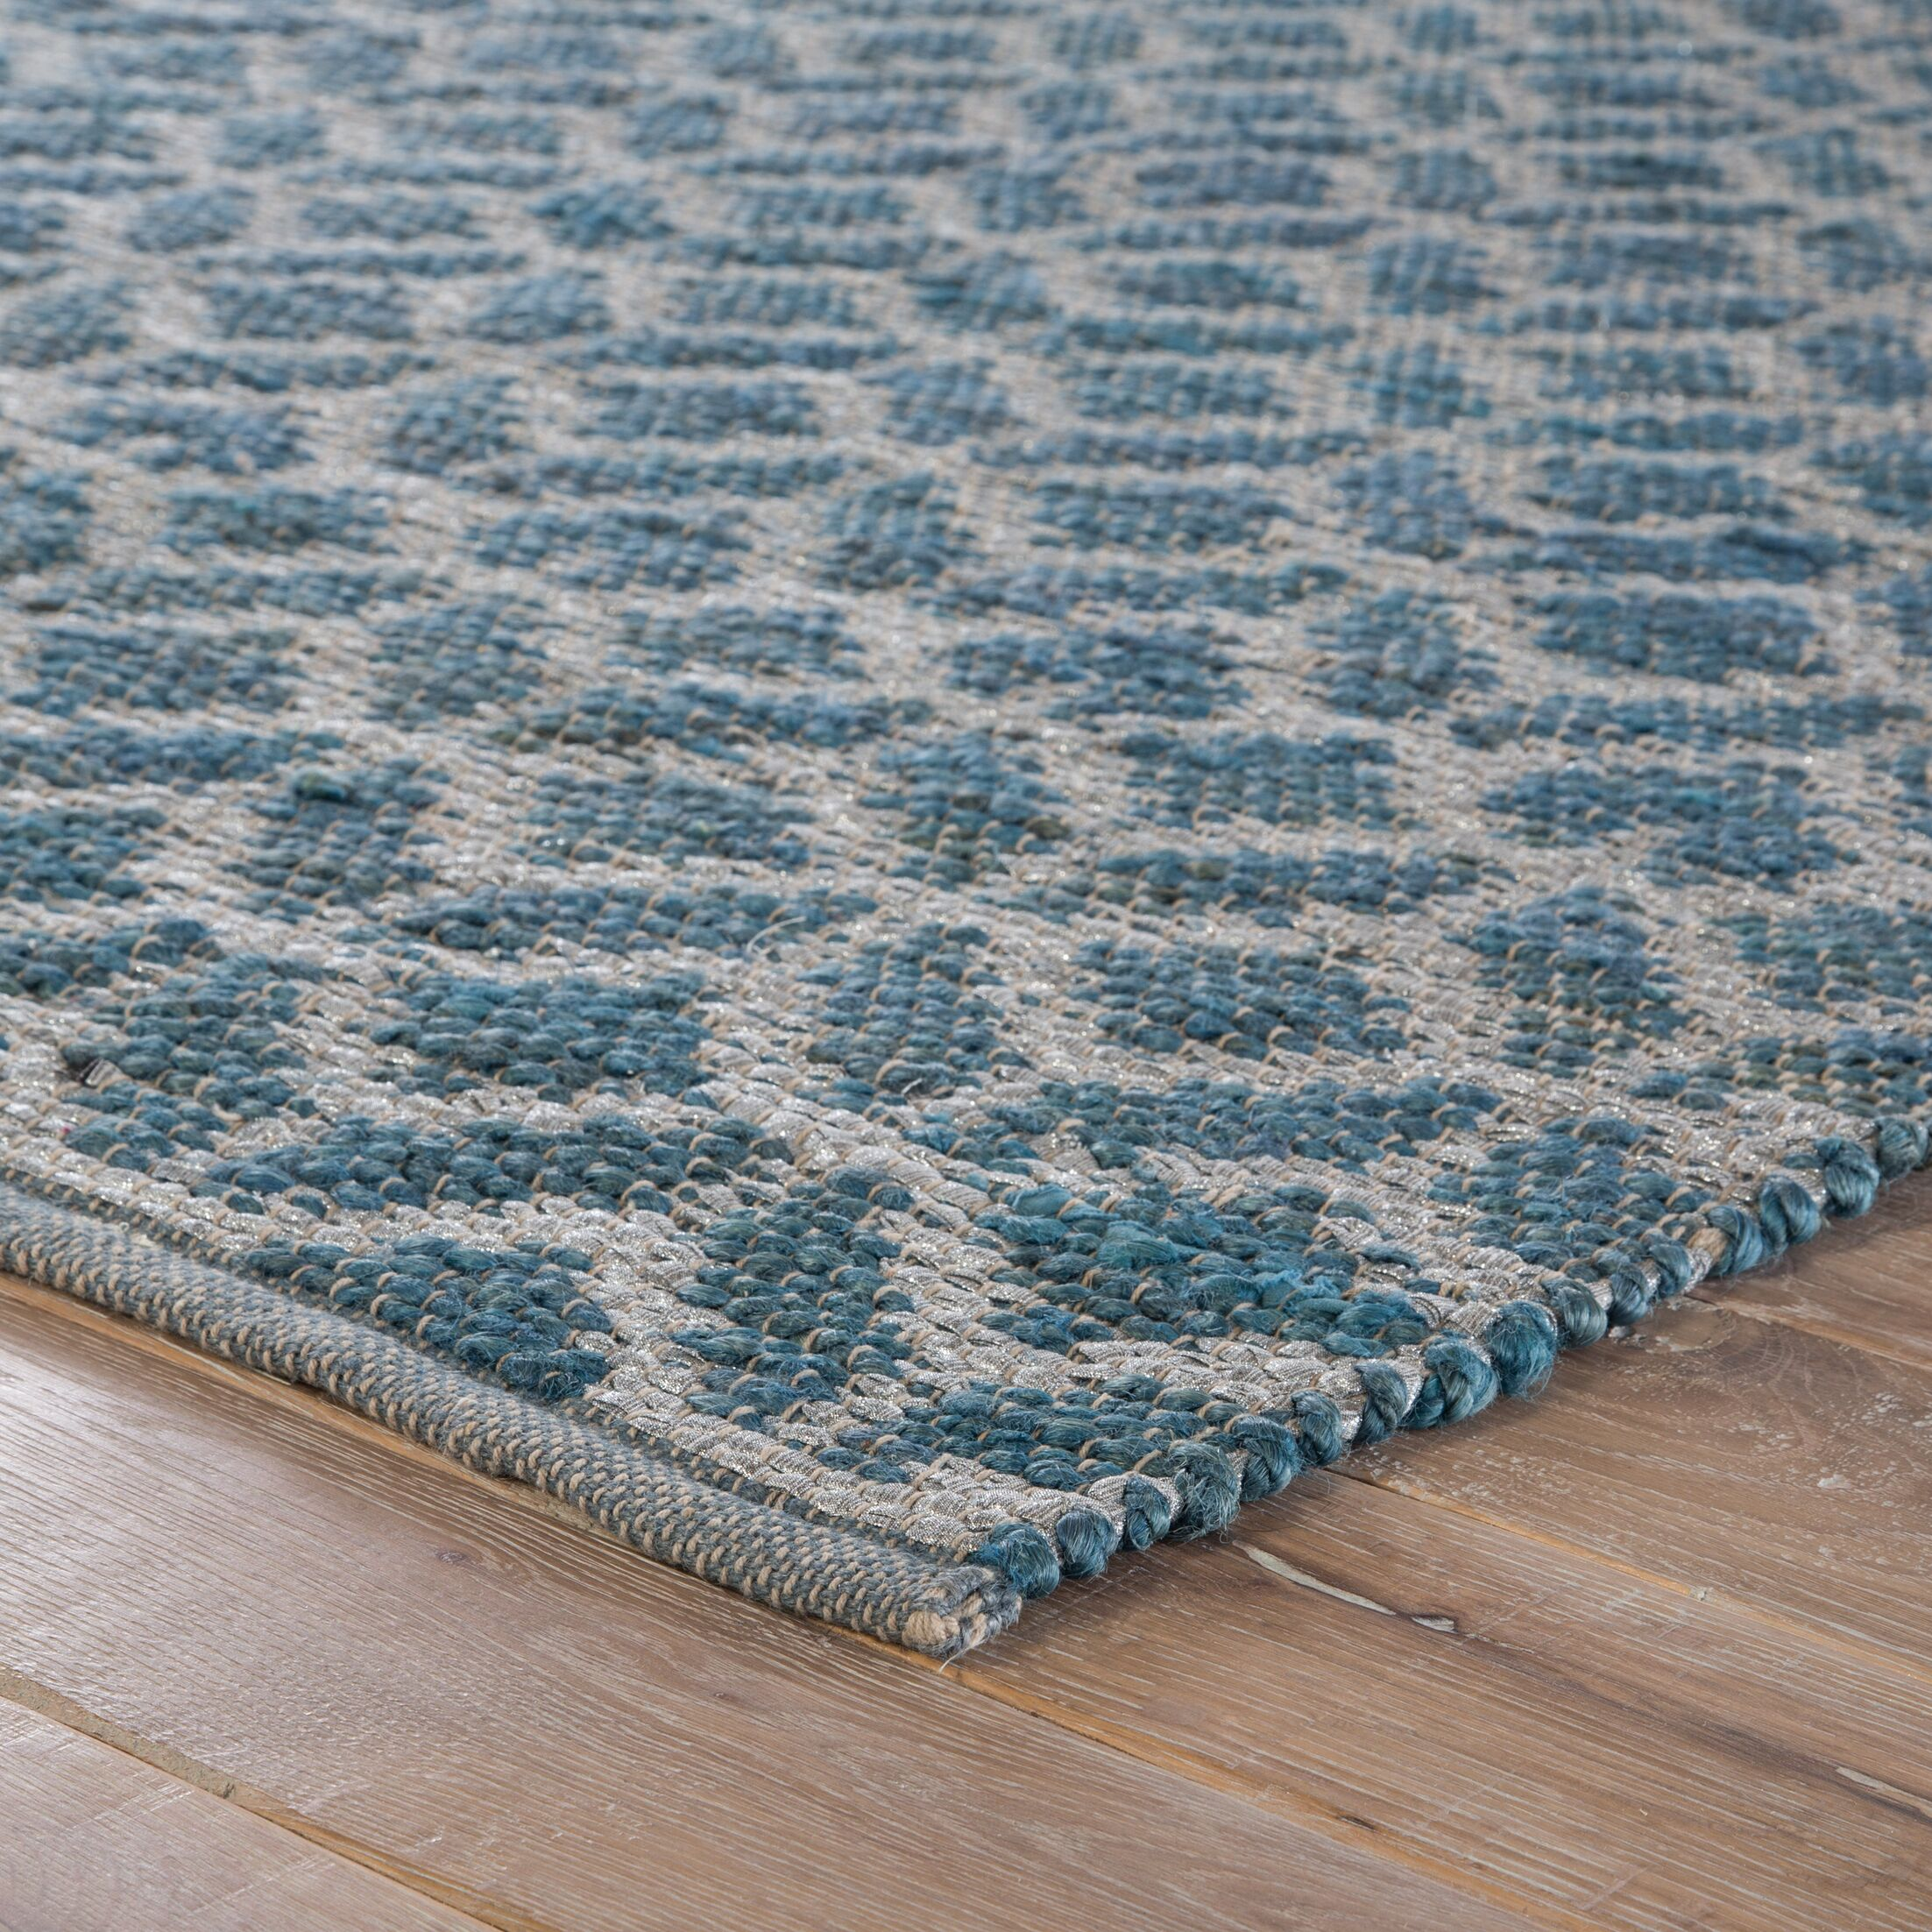 Tadashi Geometric Handmade Blue Area Rug Rug Size: Rectangle 2' x 3'